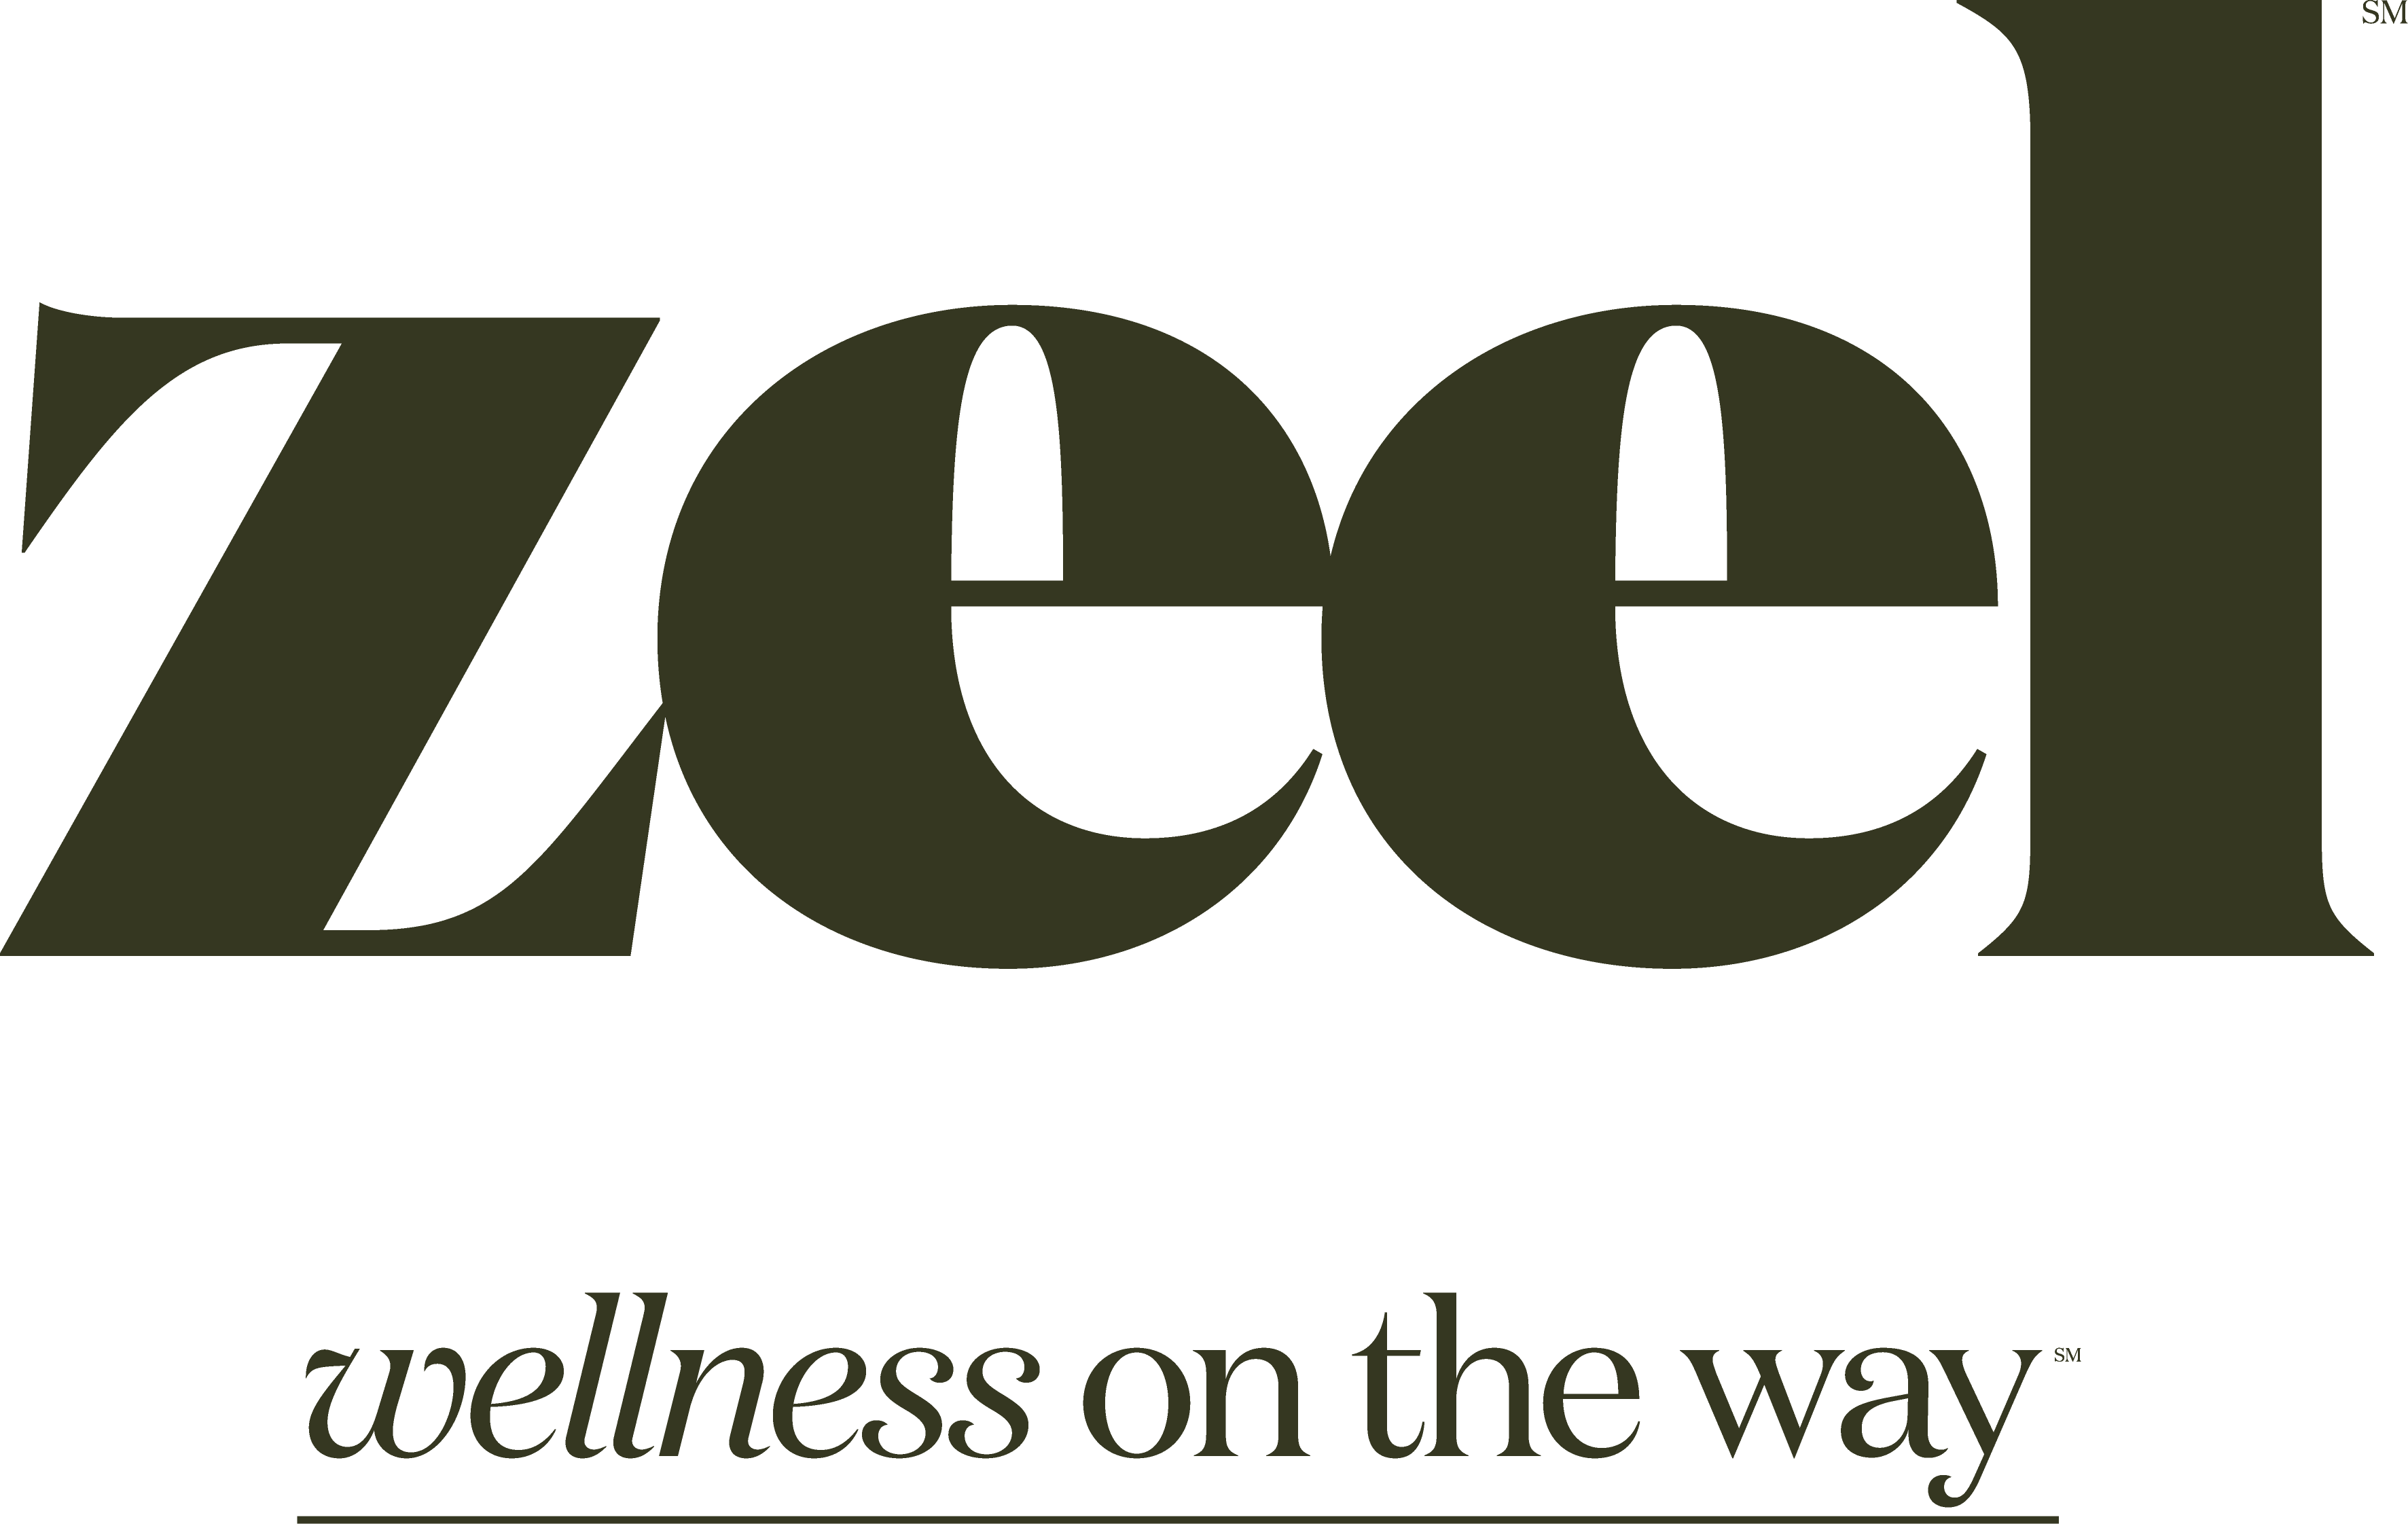 Zeel Expands Zeel@Work®, Adding Guided Meditation, Assisted Stretching, And Yoga To Growing Corporate Offerings